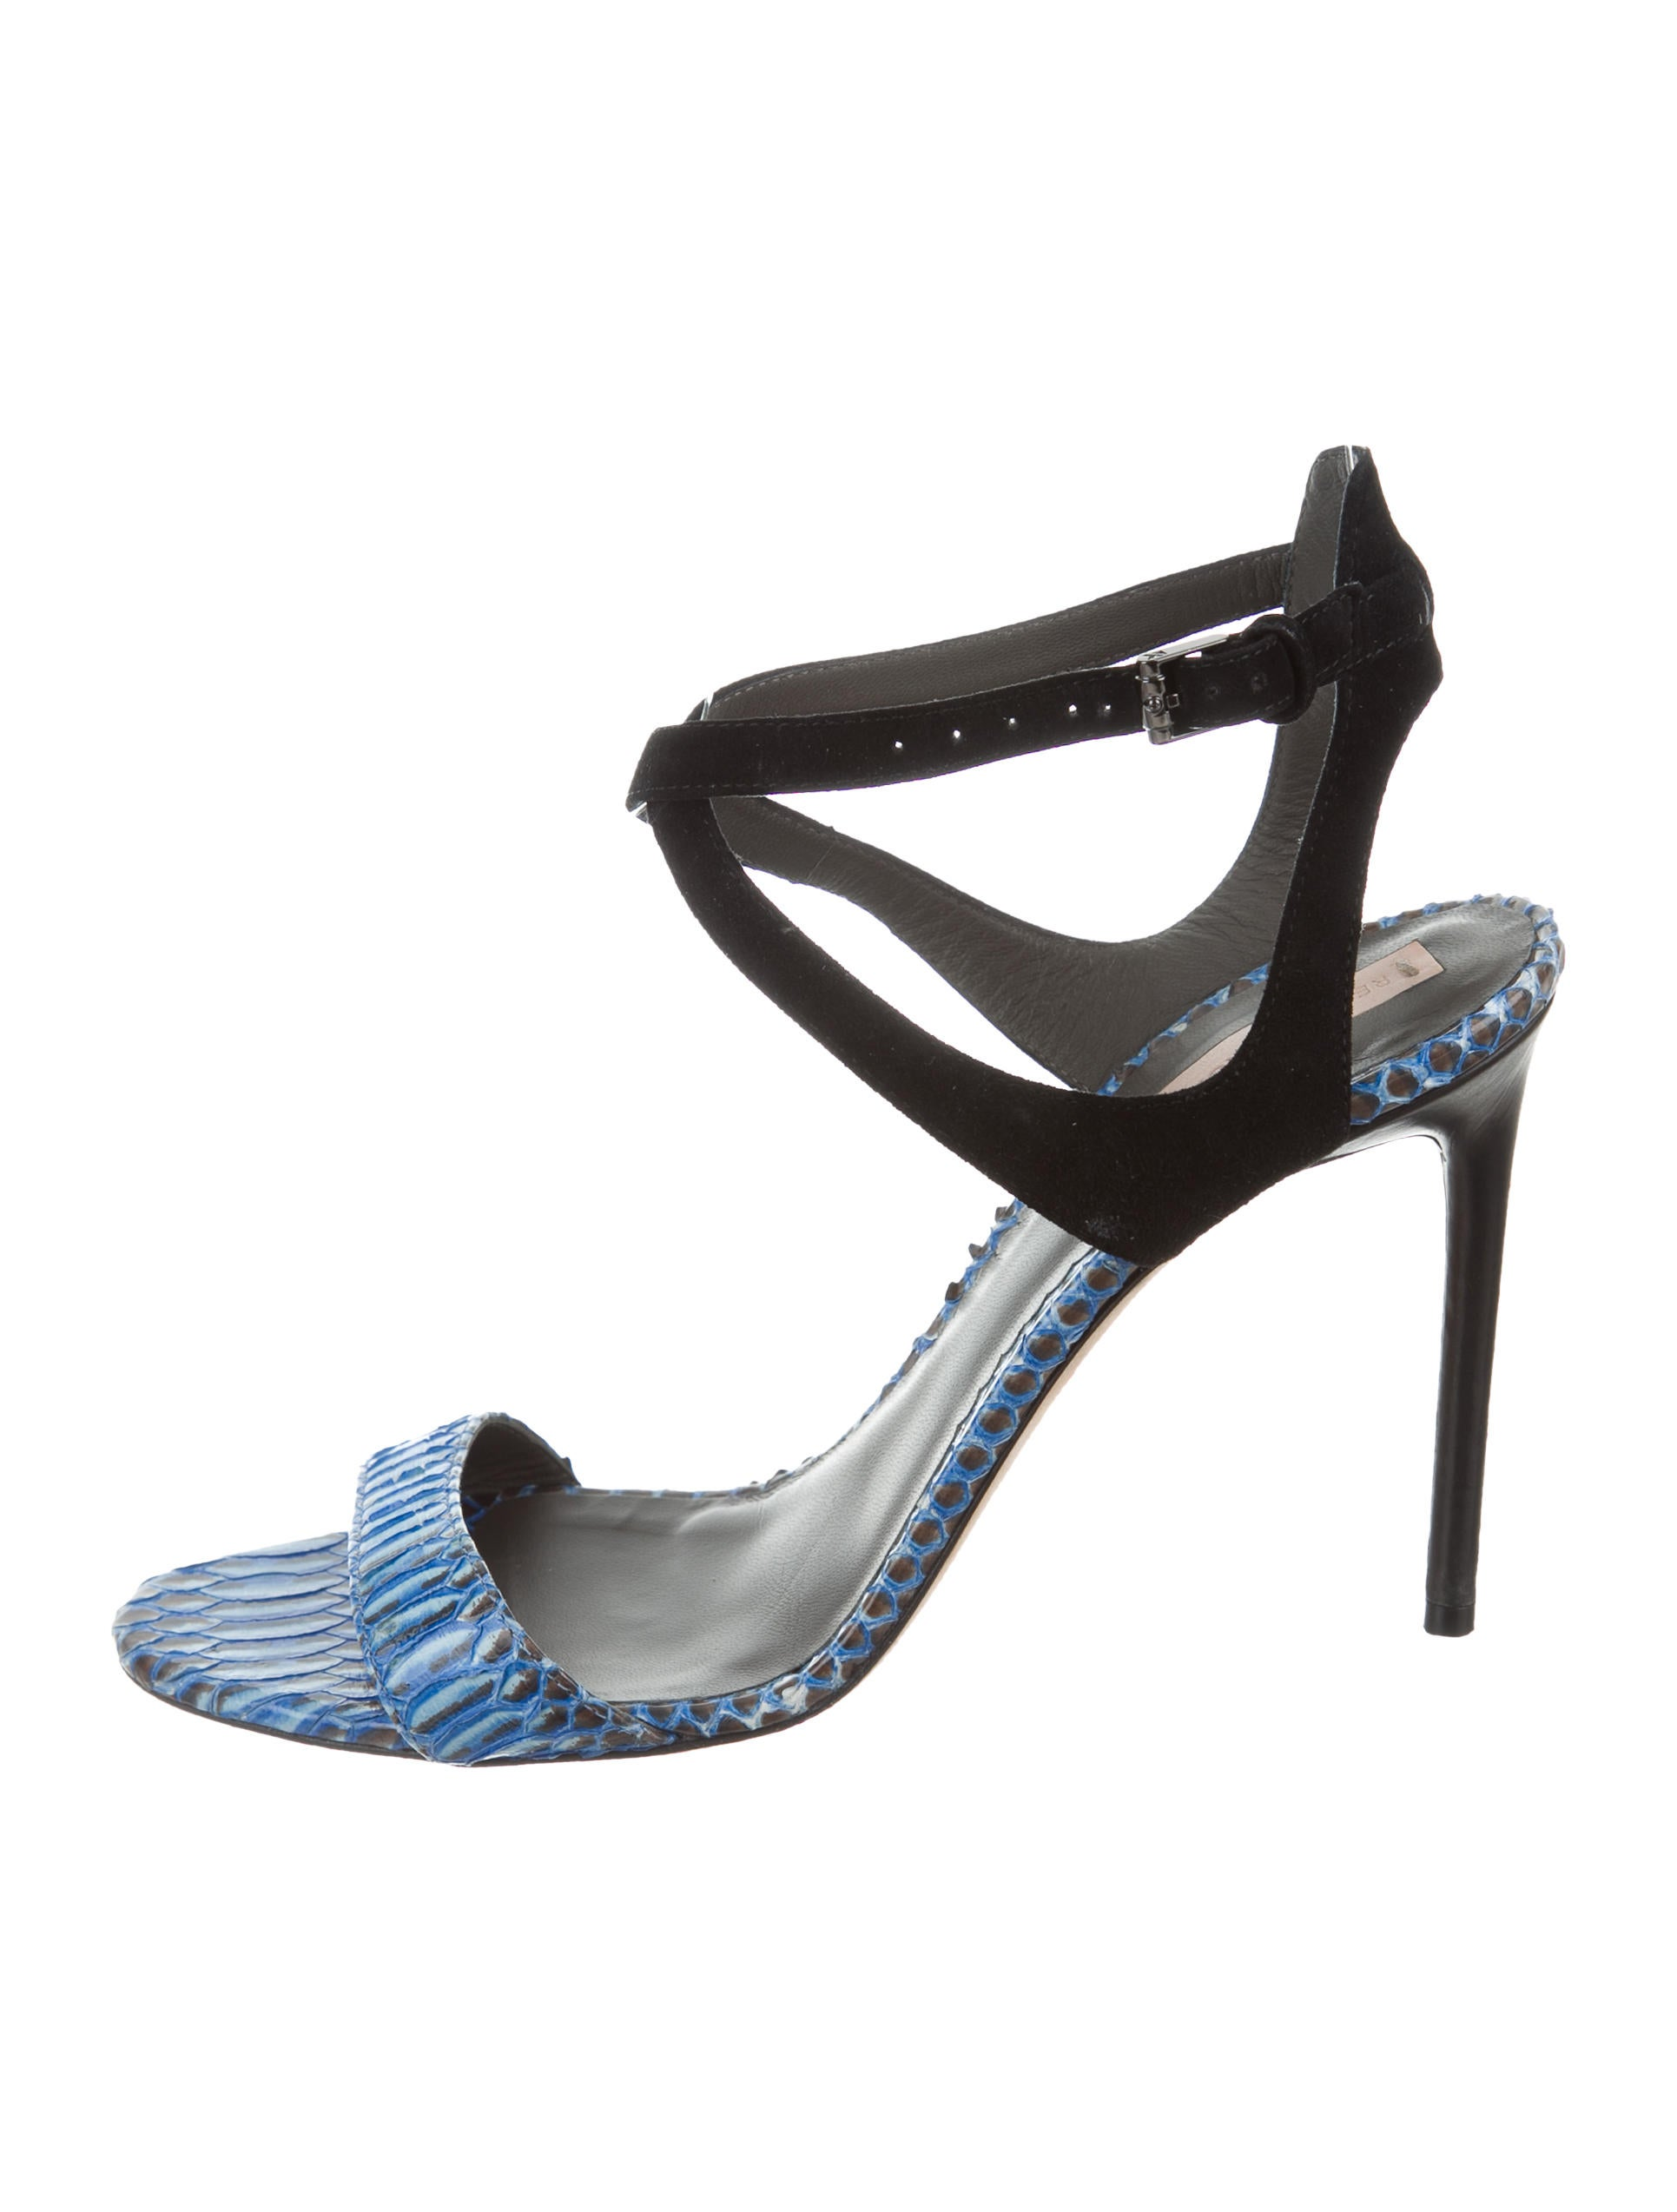 sale cheap sale discount Reed Krakoff Python-Trimmed Suede Sandals buy cheap visit new cheap deals 2015 new cheap online XTBXFvc